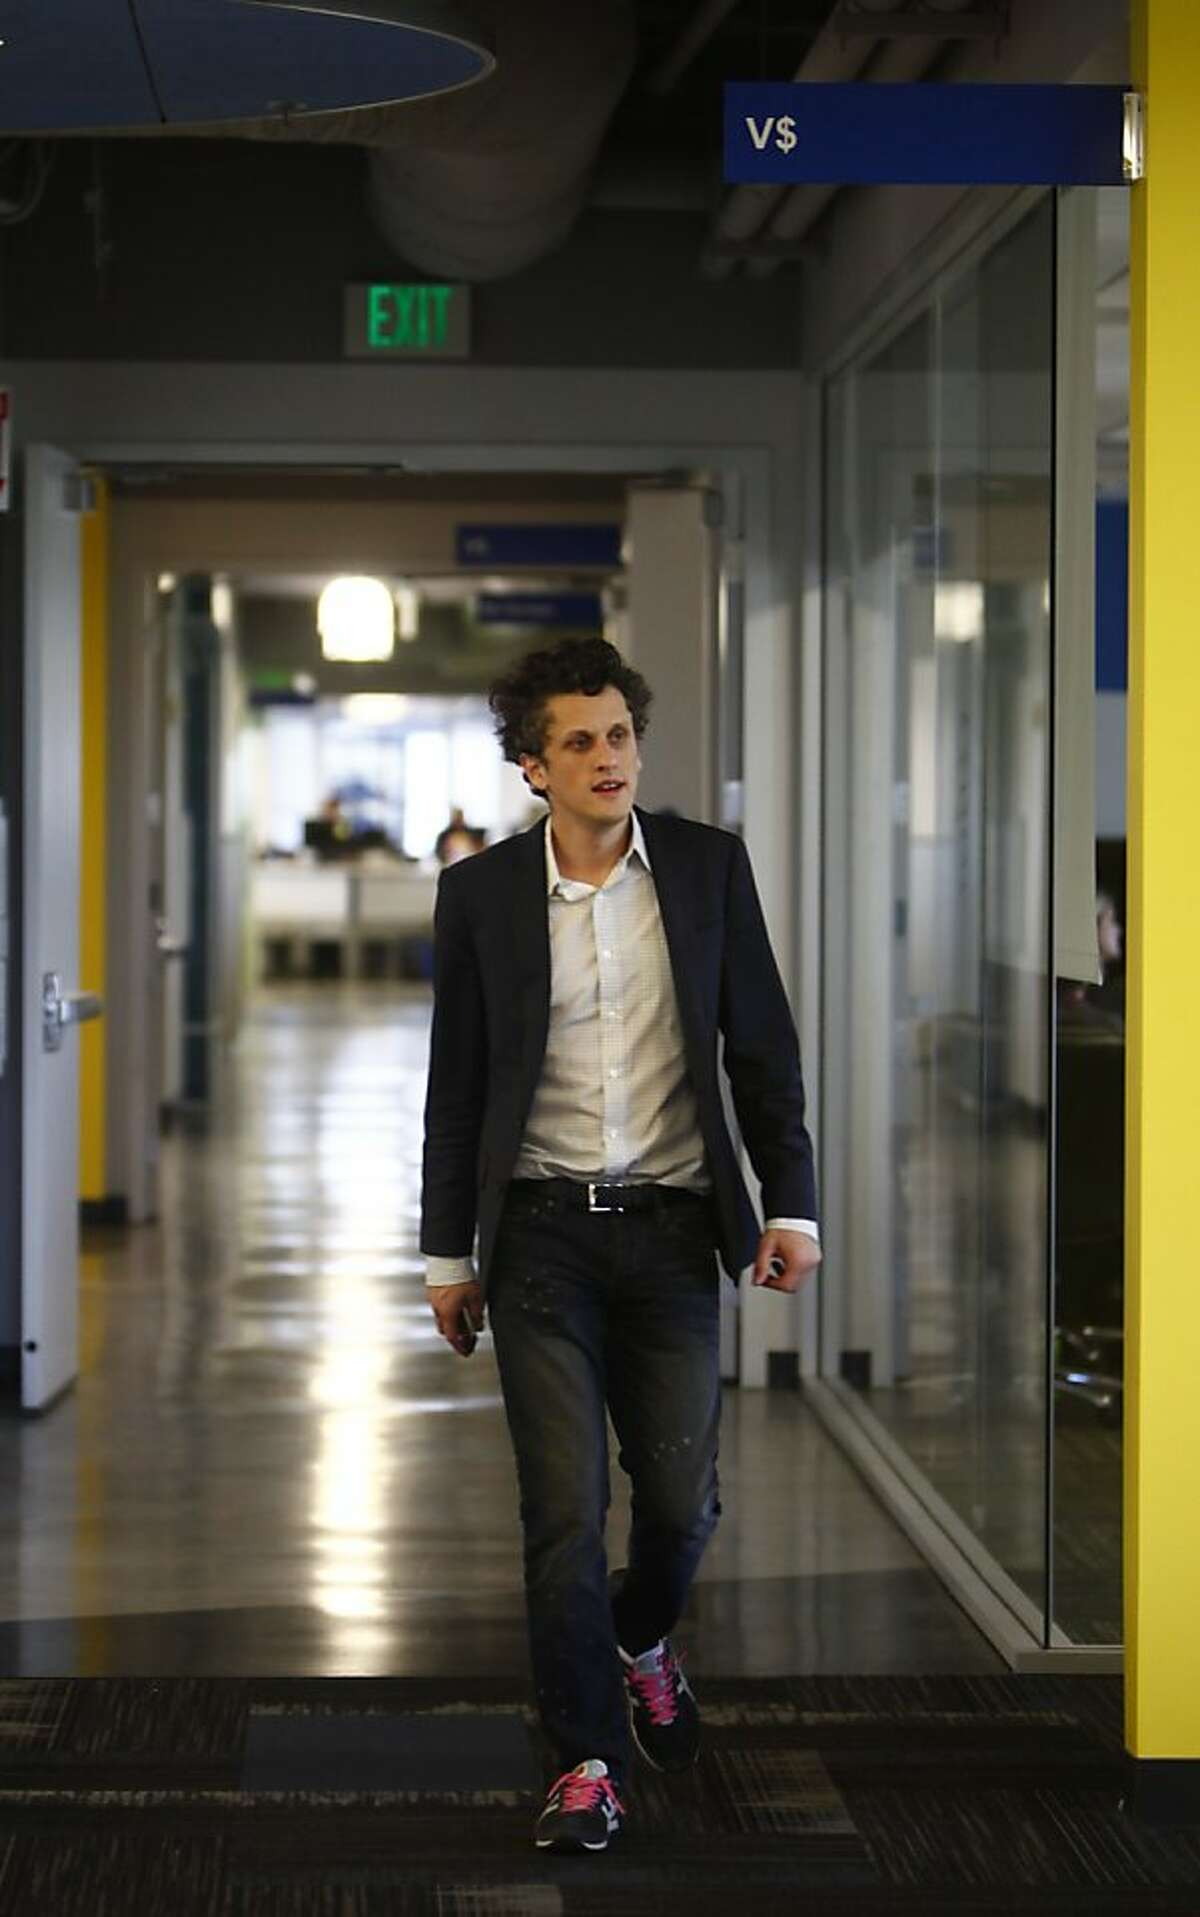 Aaron Levie, CEO of Box, walks through Box headquarters on Friday, September 28, 2012 in Los Altos, Calif.